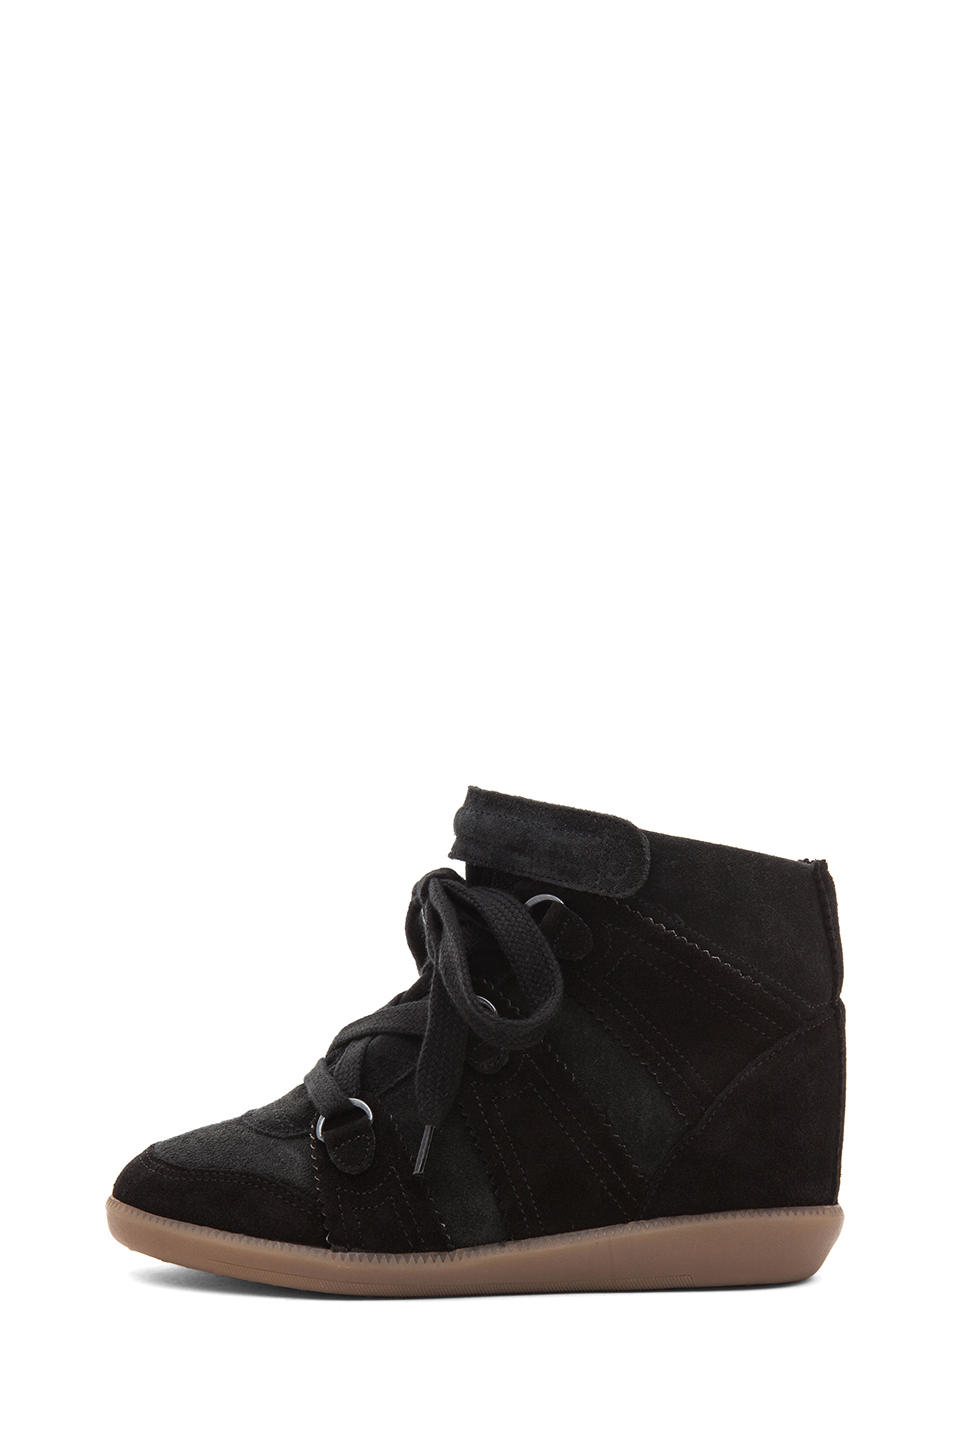 Isabel Marant|Bluebel Sneaker in Faded Black